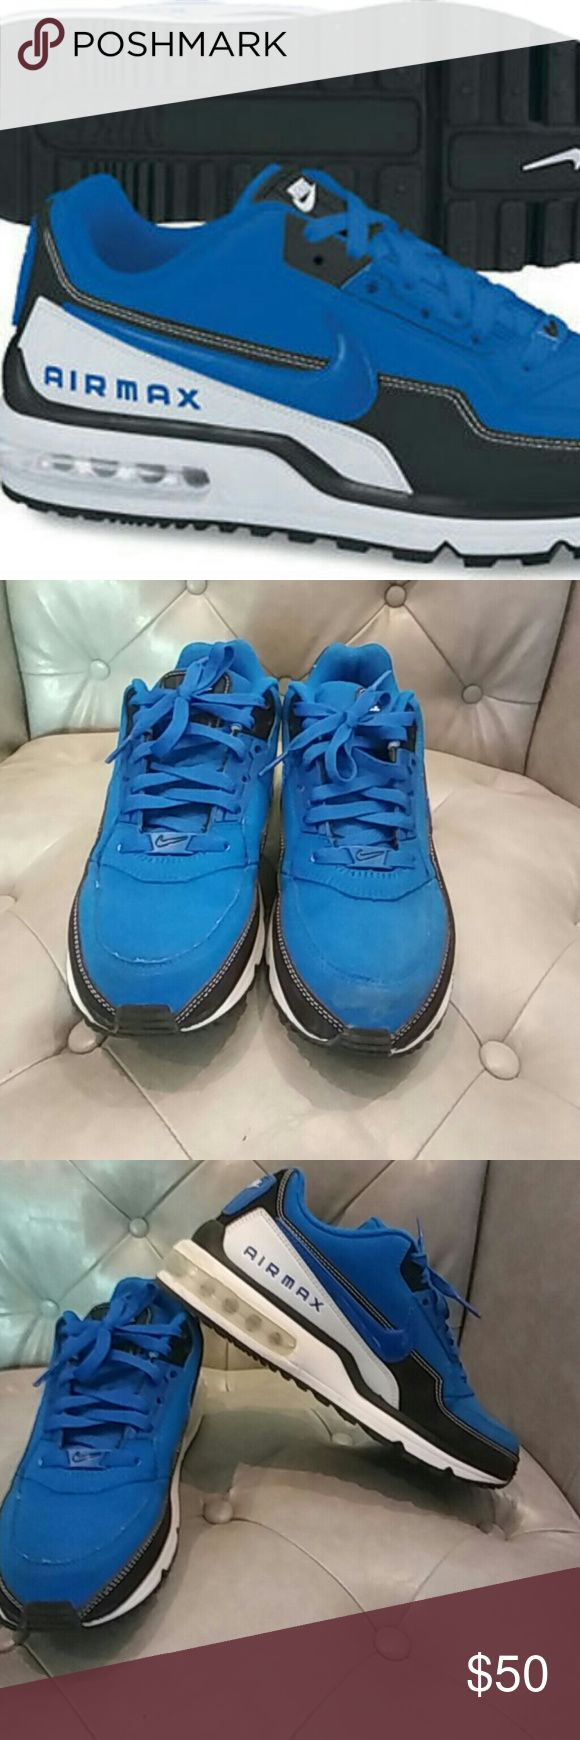 Mens NIKE air max Ltd Blue/Black sneakers sz,8 Nike air max ltd  royal blue black and white in very good condition worn a couple of times mens sz,8   Feel free to ask any questions you may have. I accept all reasonable offers. Thank You! Happy Poshing! Nike air max ltd Shoes Sneakers